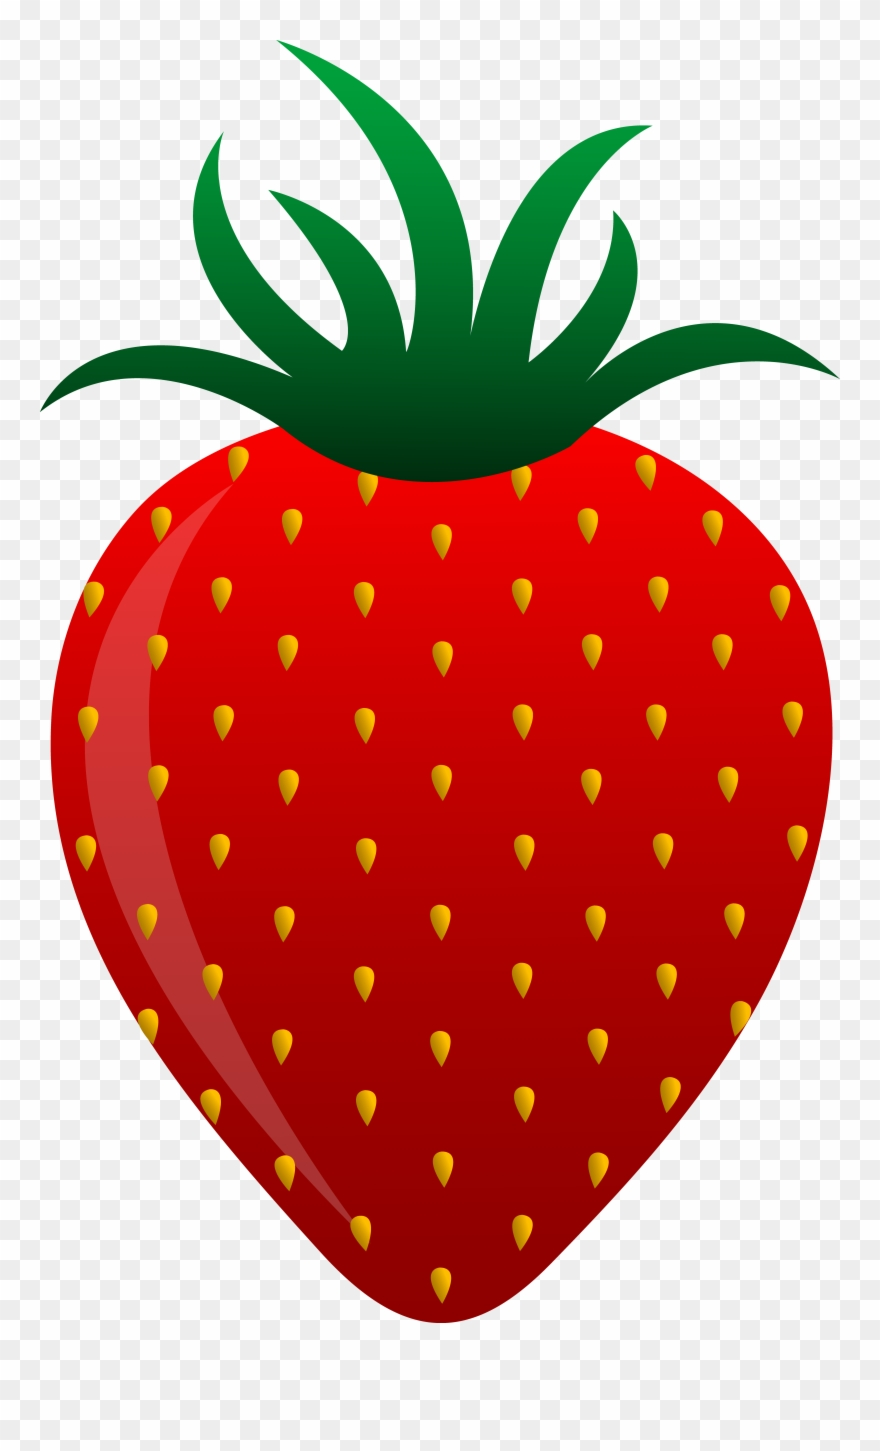 Red Fruits And Vegetables Clipart.